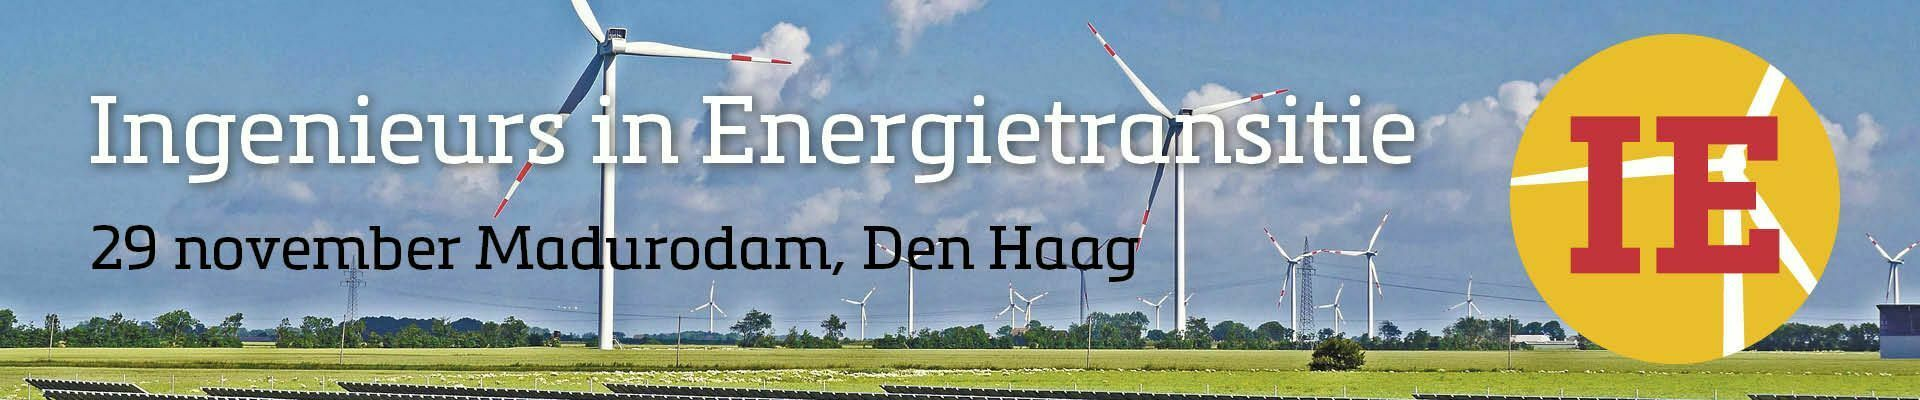 Ingenieurs in Energietransitie